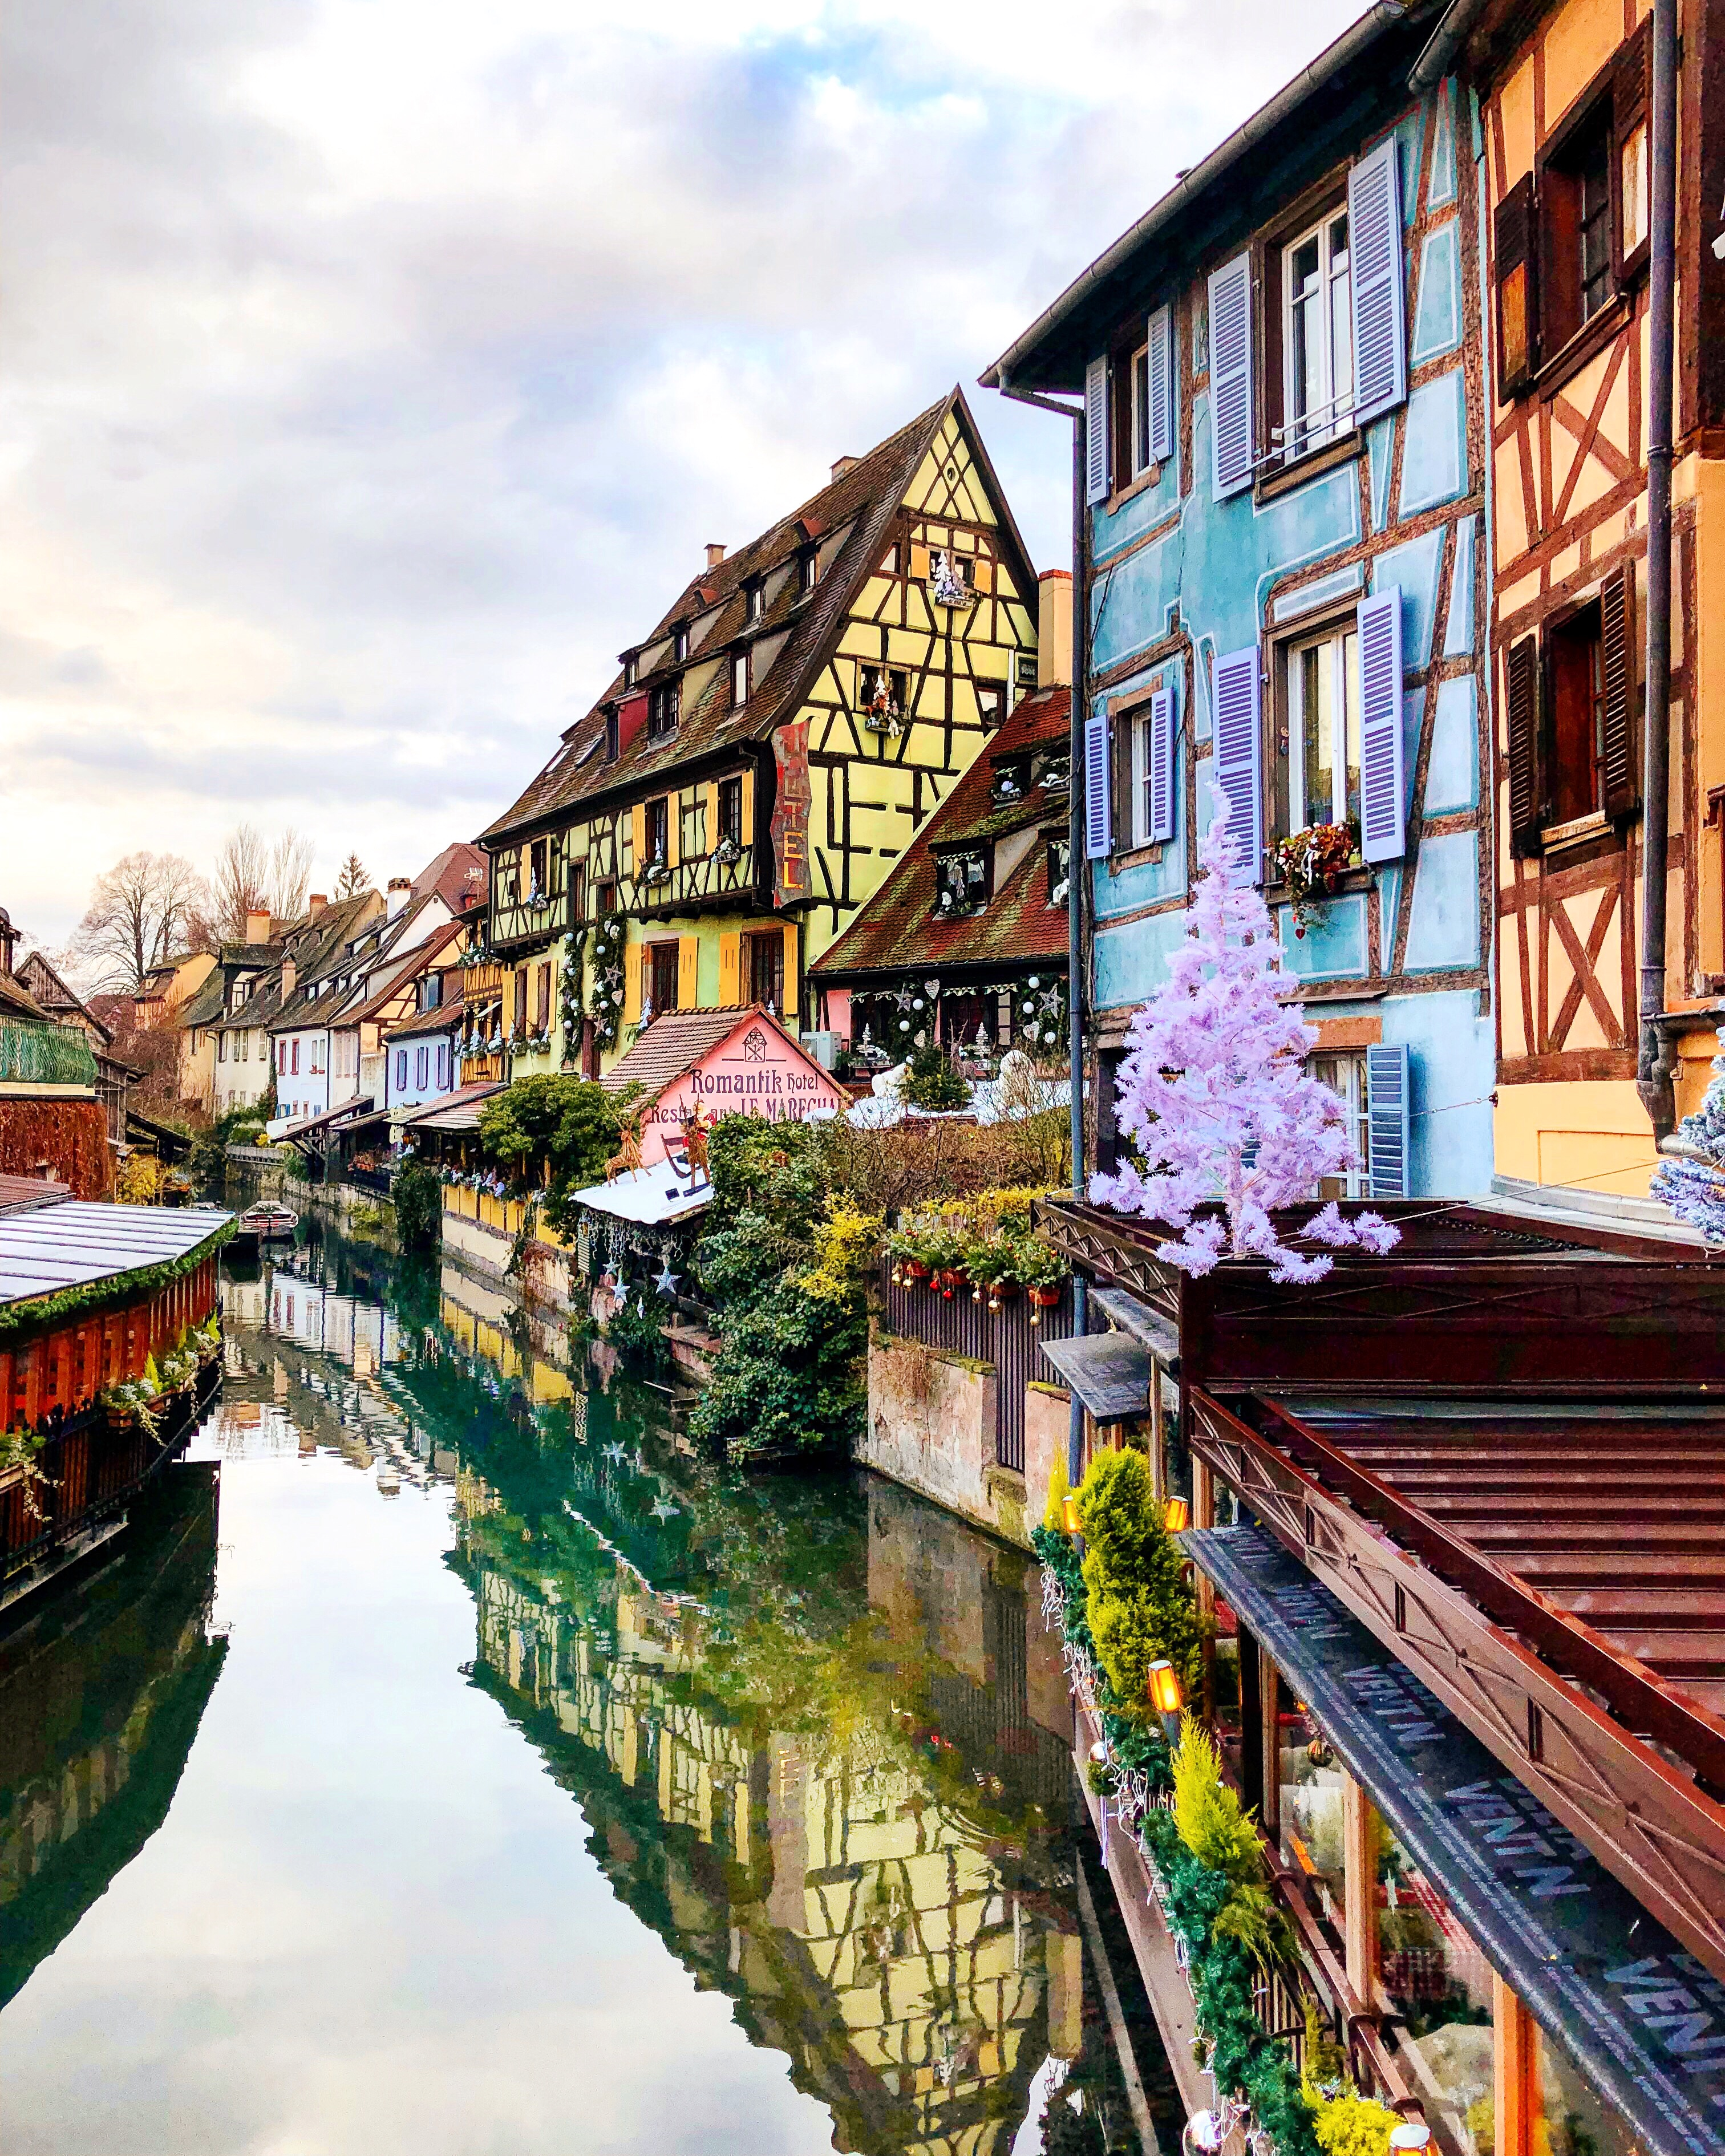 Most beautiful town in Europe: Colmar